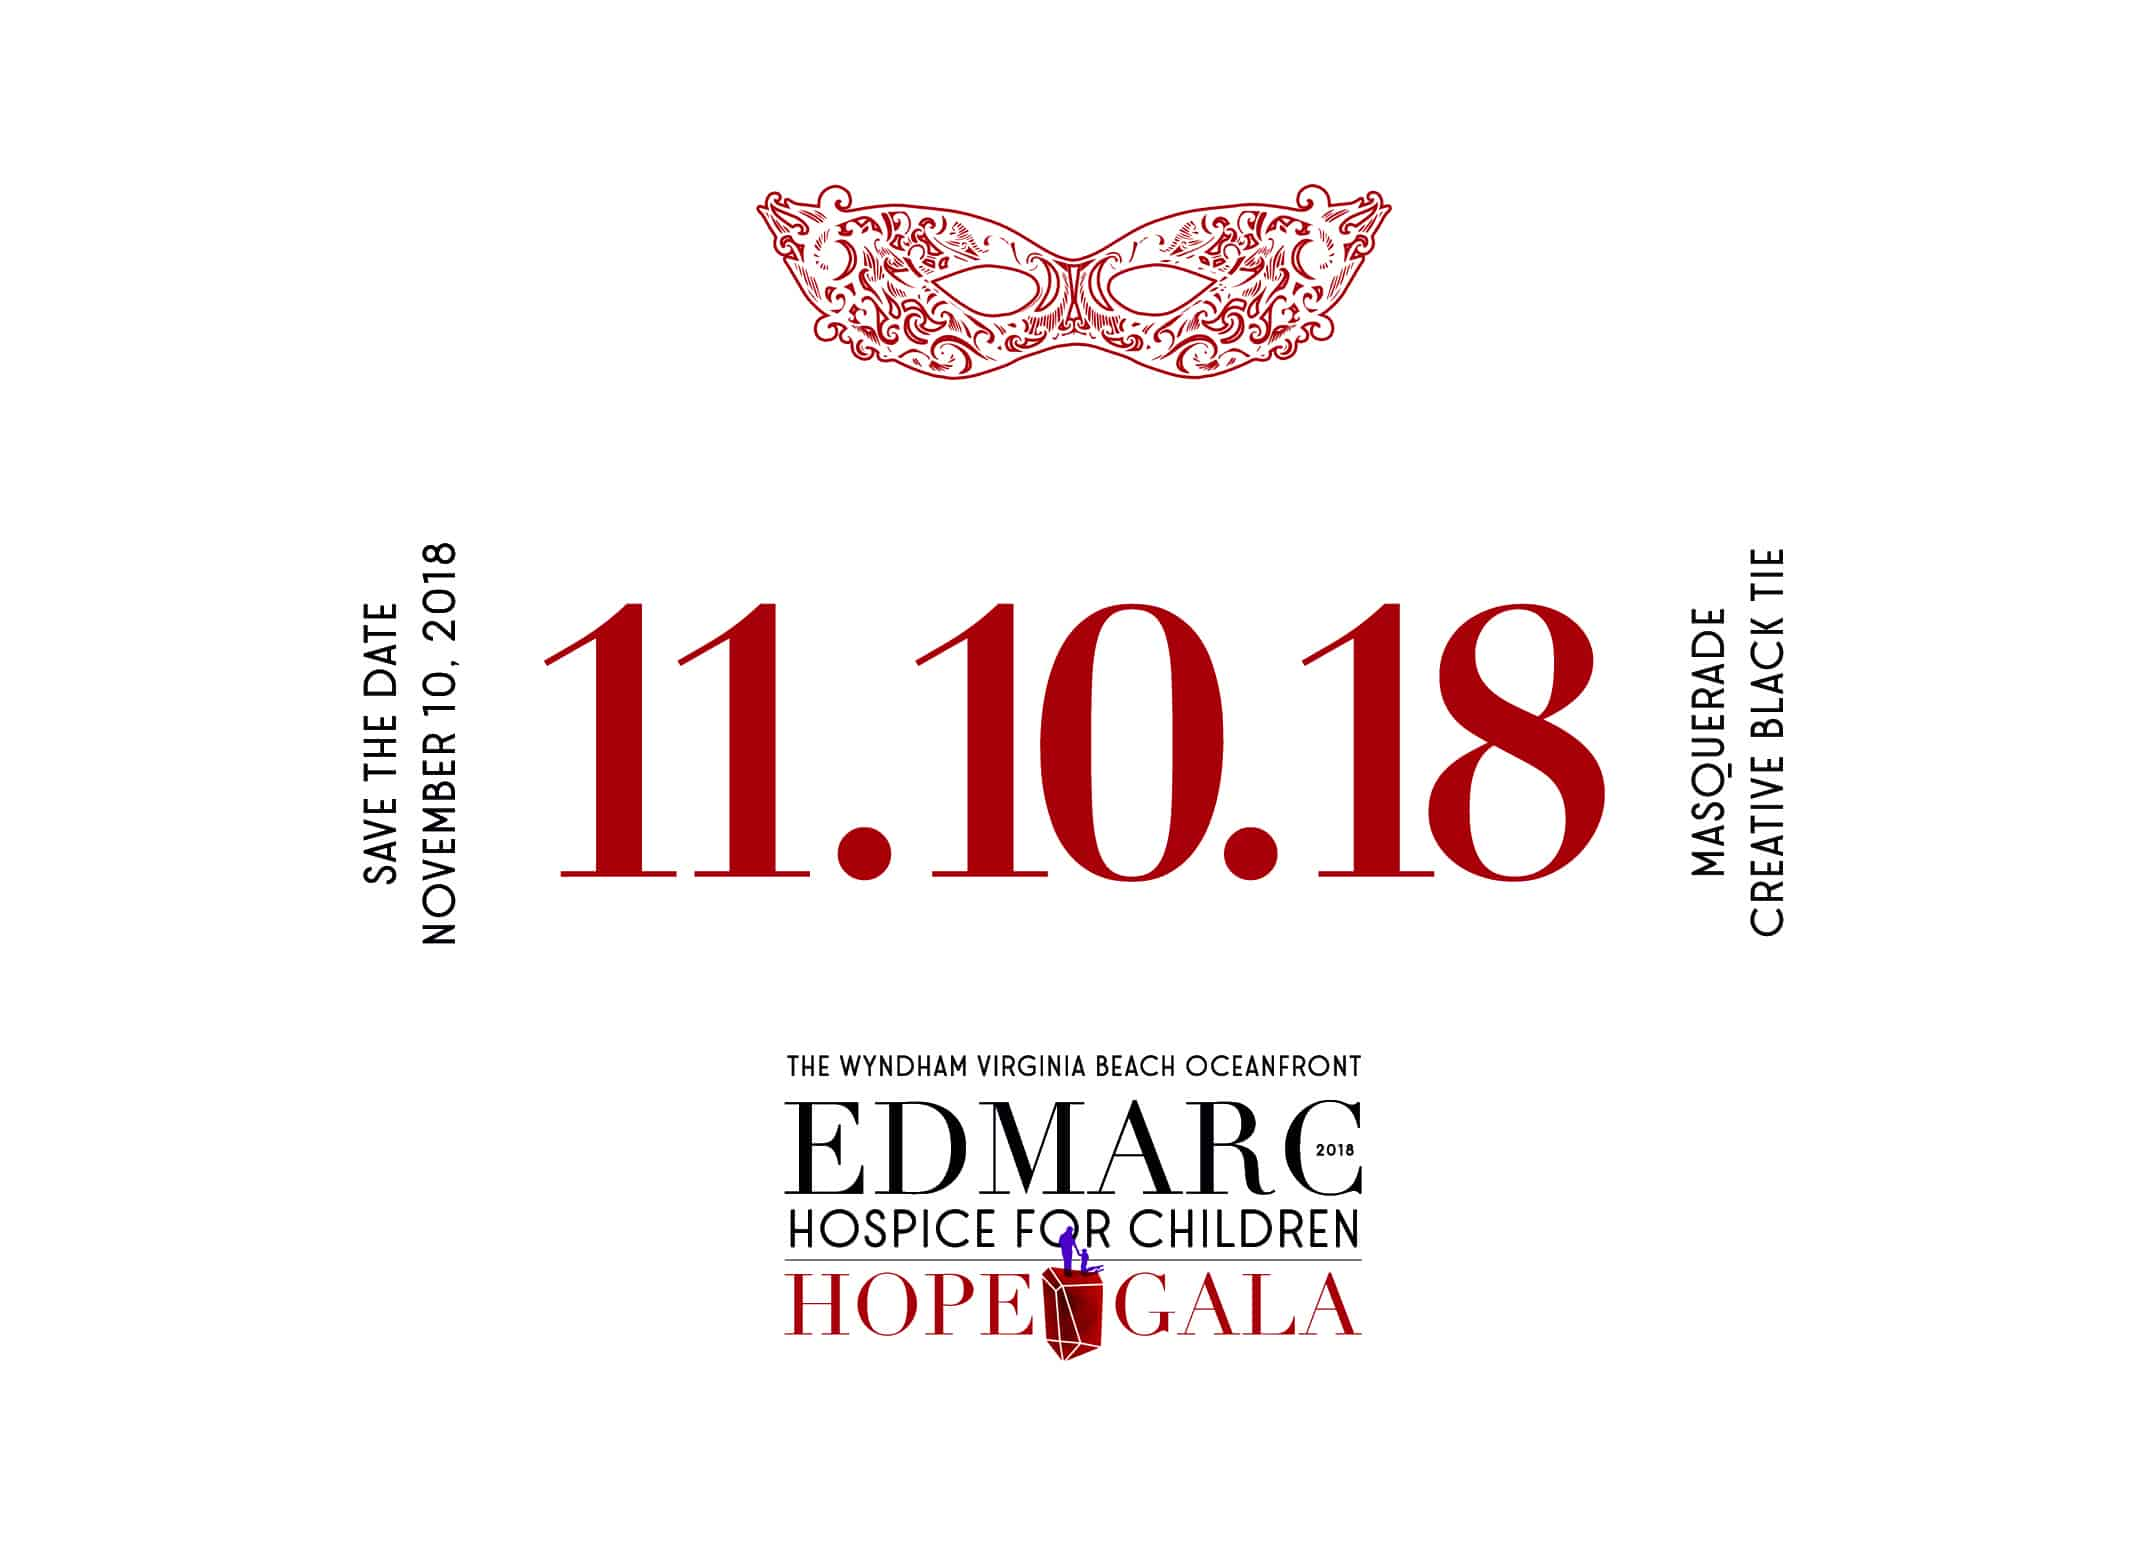 Edmarc Hope Gala Save the Date Postcard